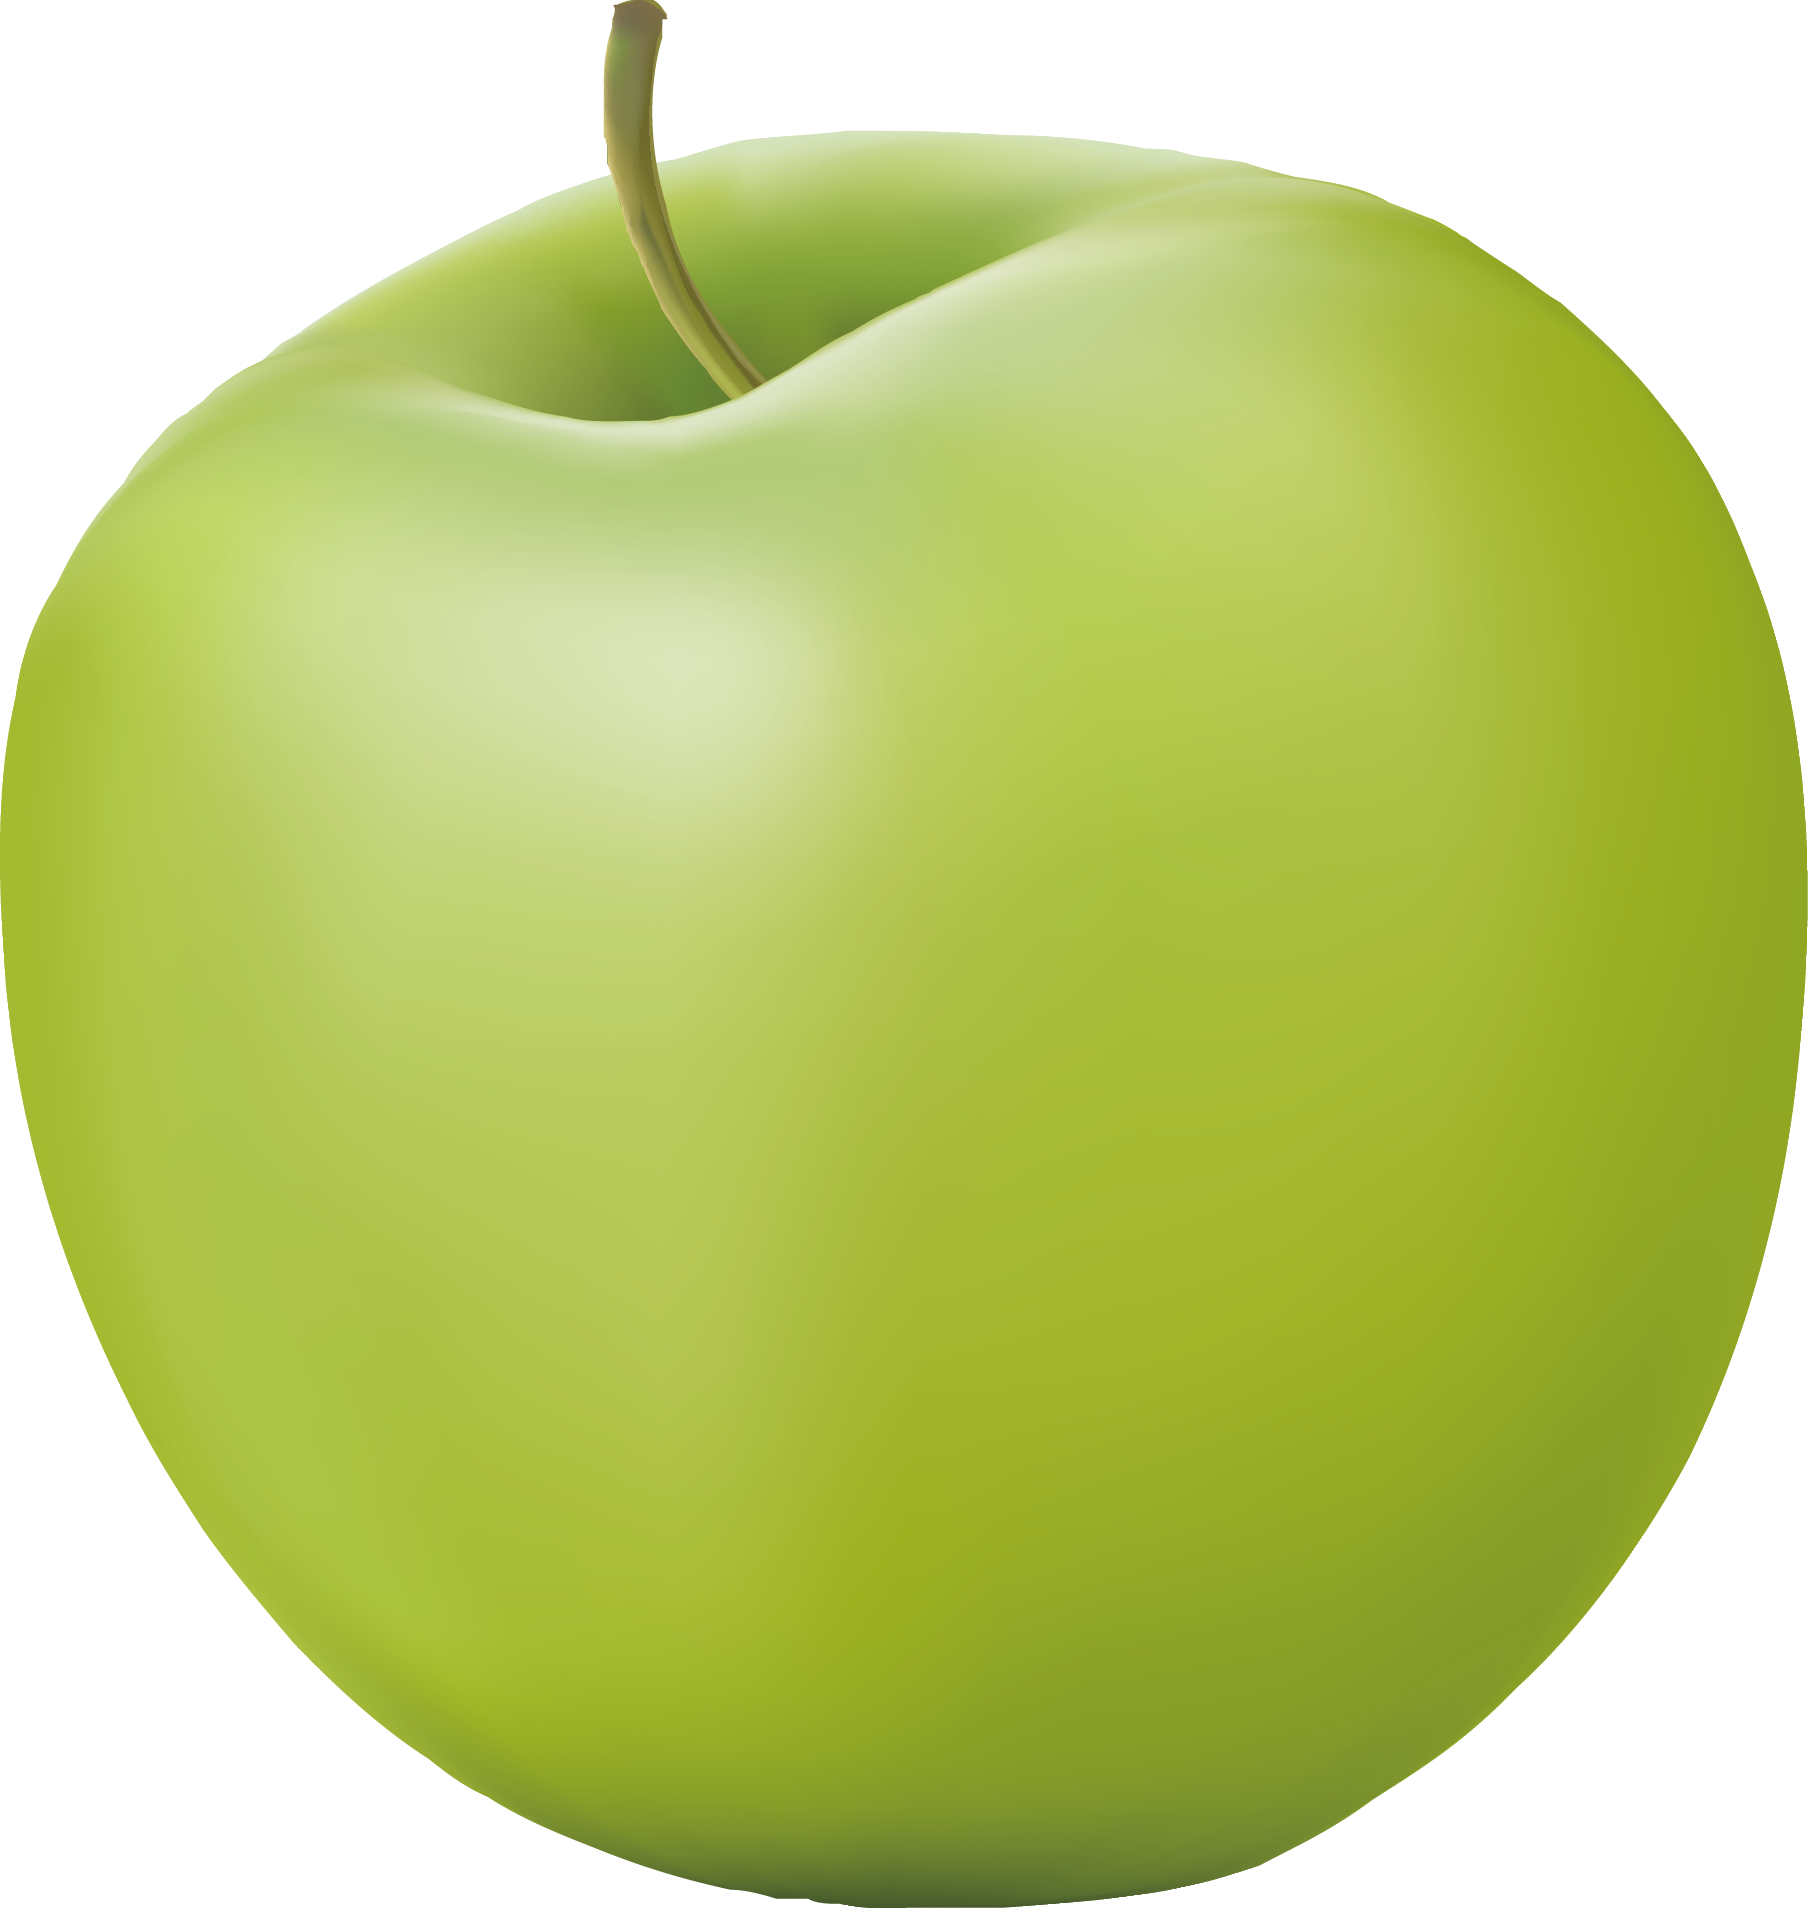 1808x1908 Granny Smith Green Apple